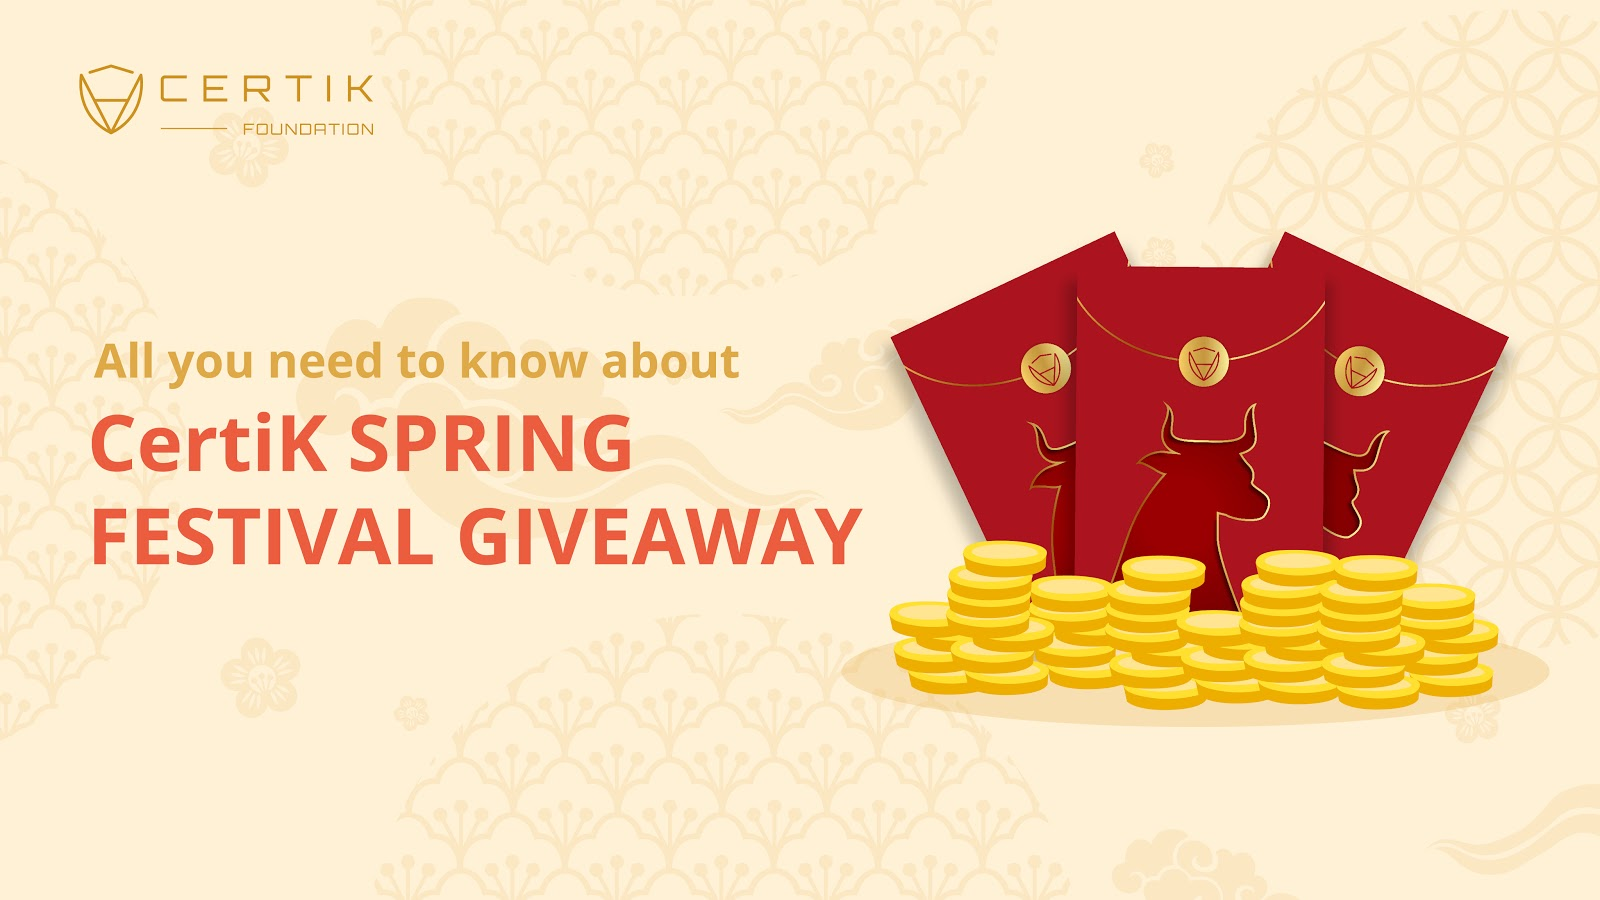 All you need to know about CertiK Spring Festival Giveaway!